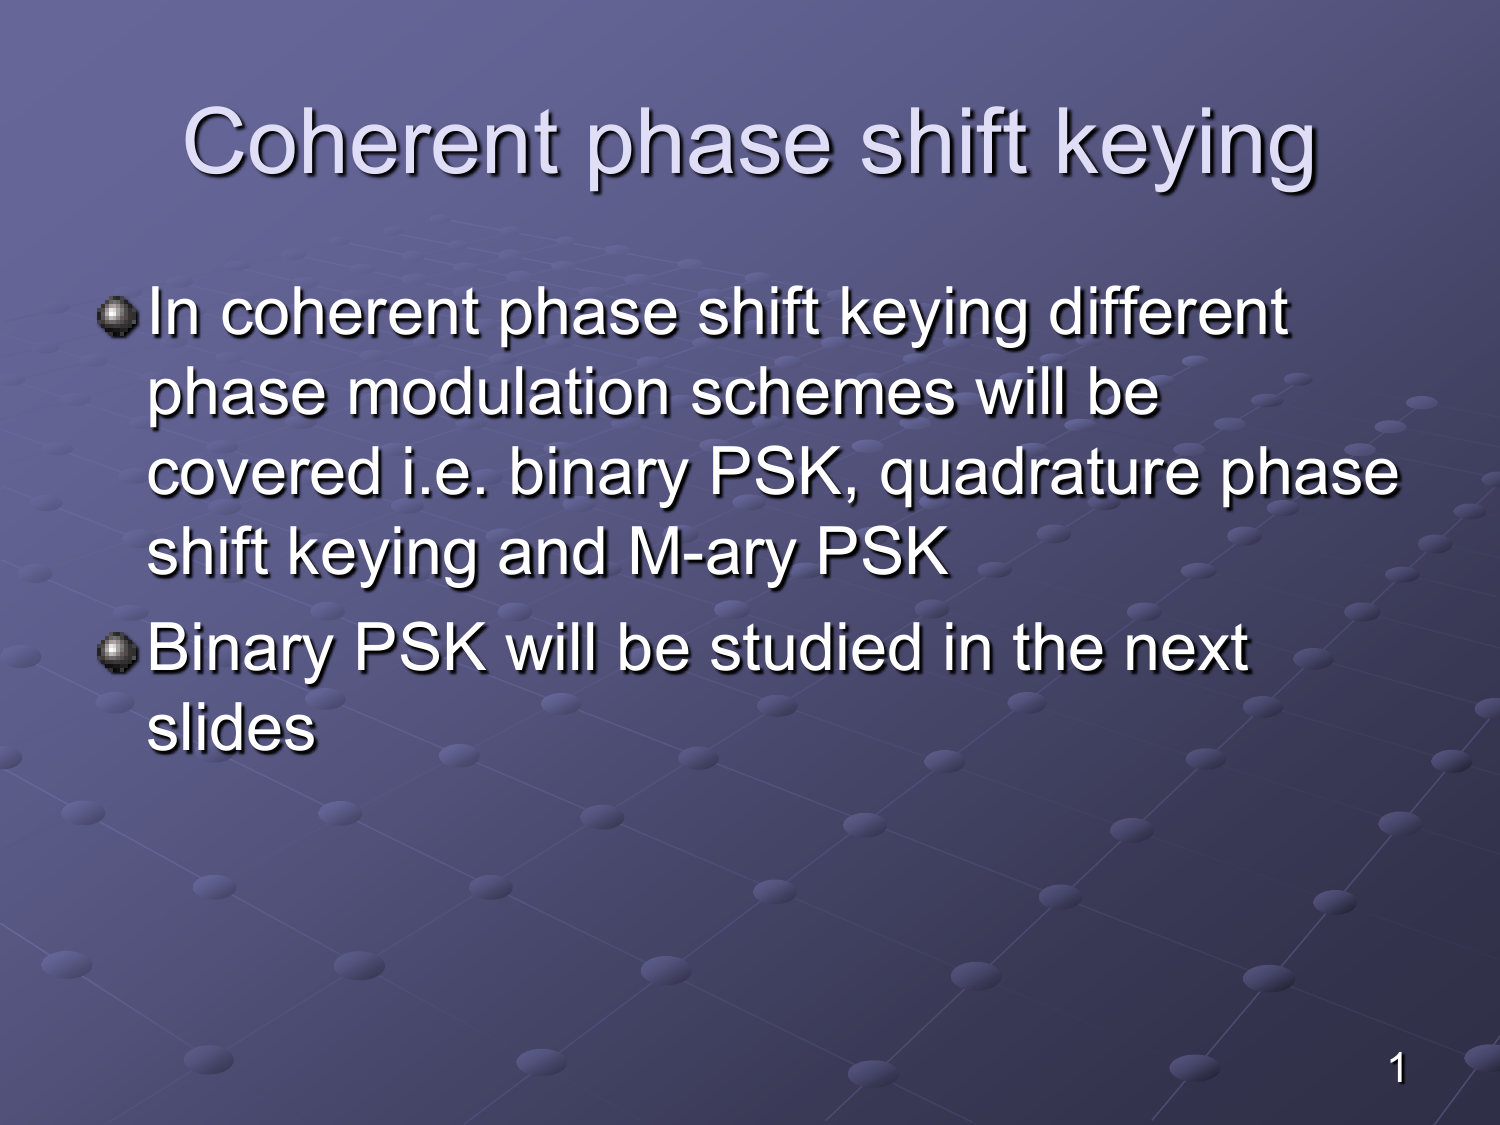 coherent phase shift keying different phase modulation schemes will be  covered i e  binary psk, quadrature phase shift keying and m-ary psk binary  psk